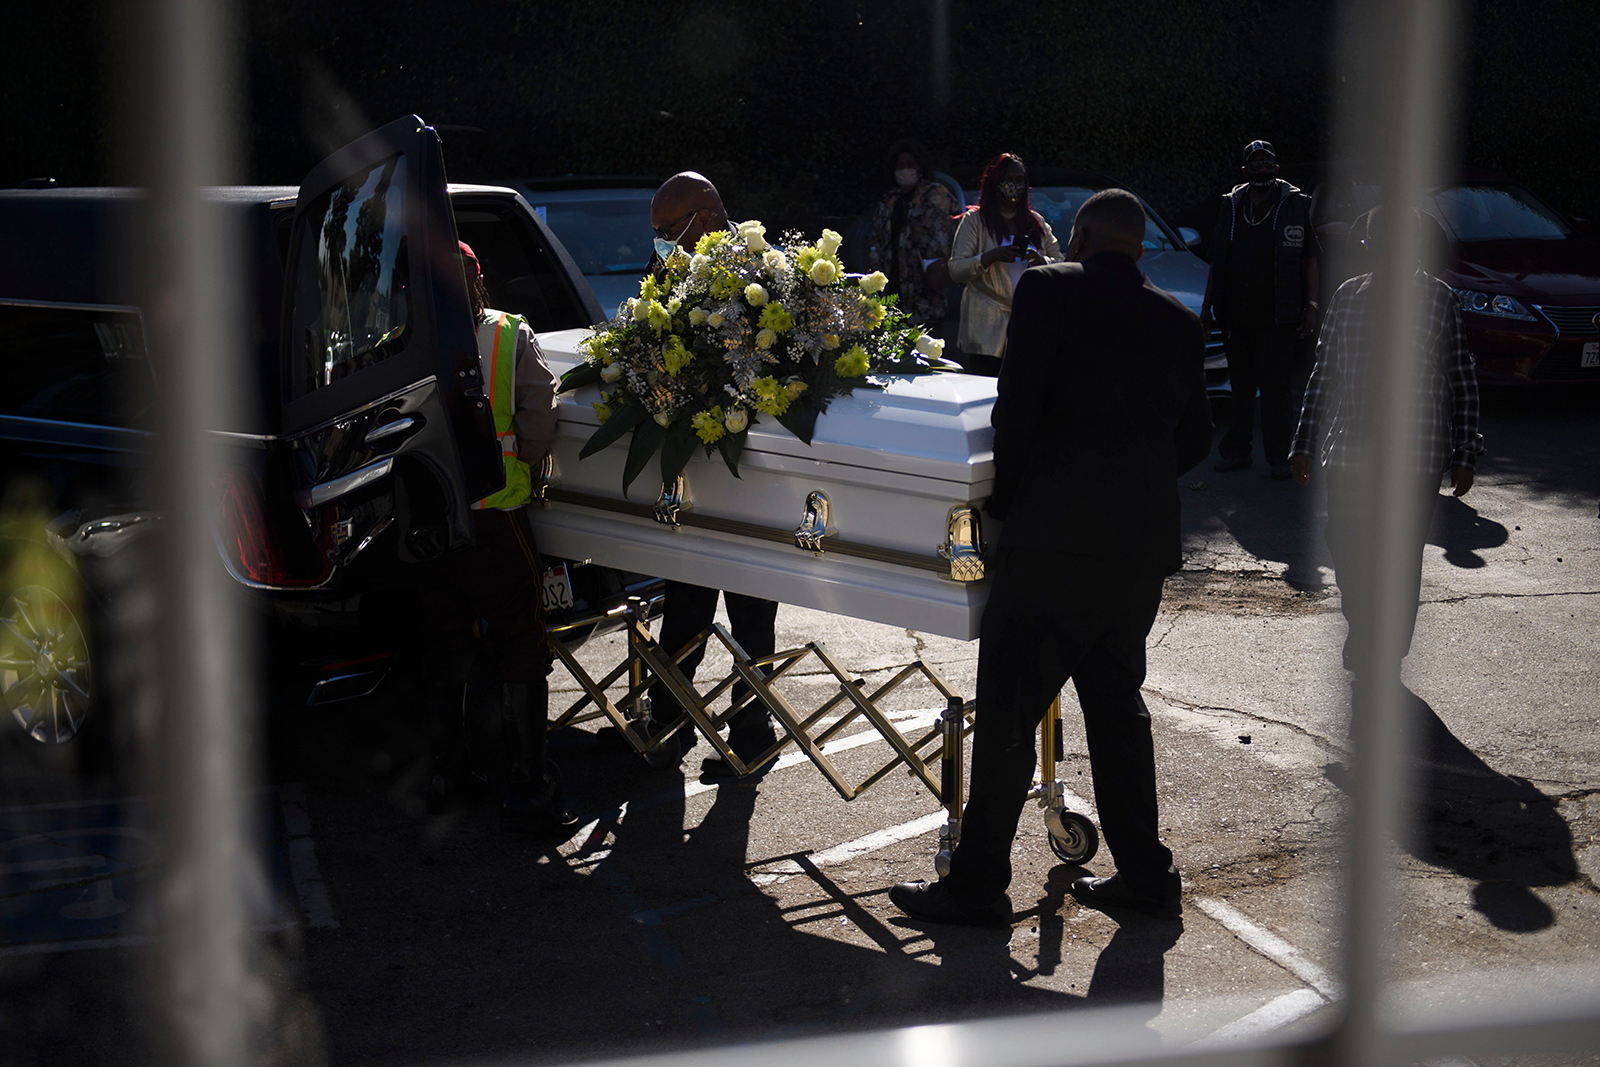 A casket is loaded into a hearse at the Boyd Funeral Home, as burials at cemeteries are delayed to the surge of Covid-19 deaths on January 14, in Los Angeles, California.